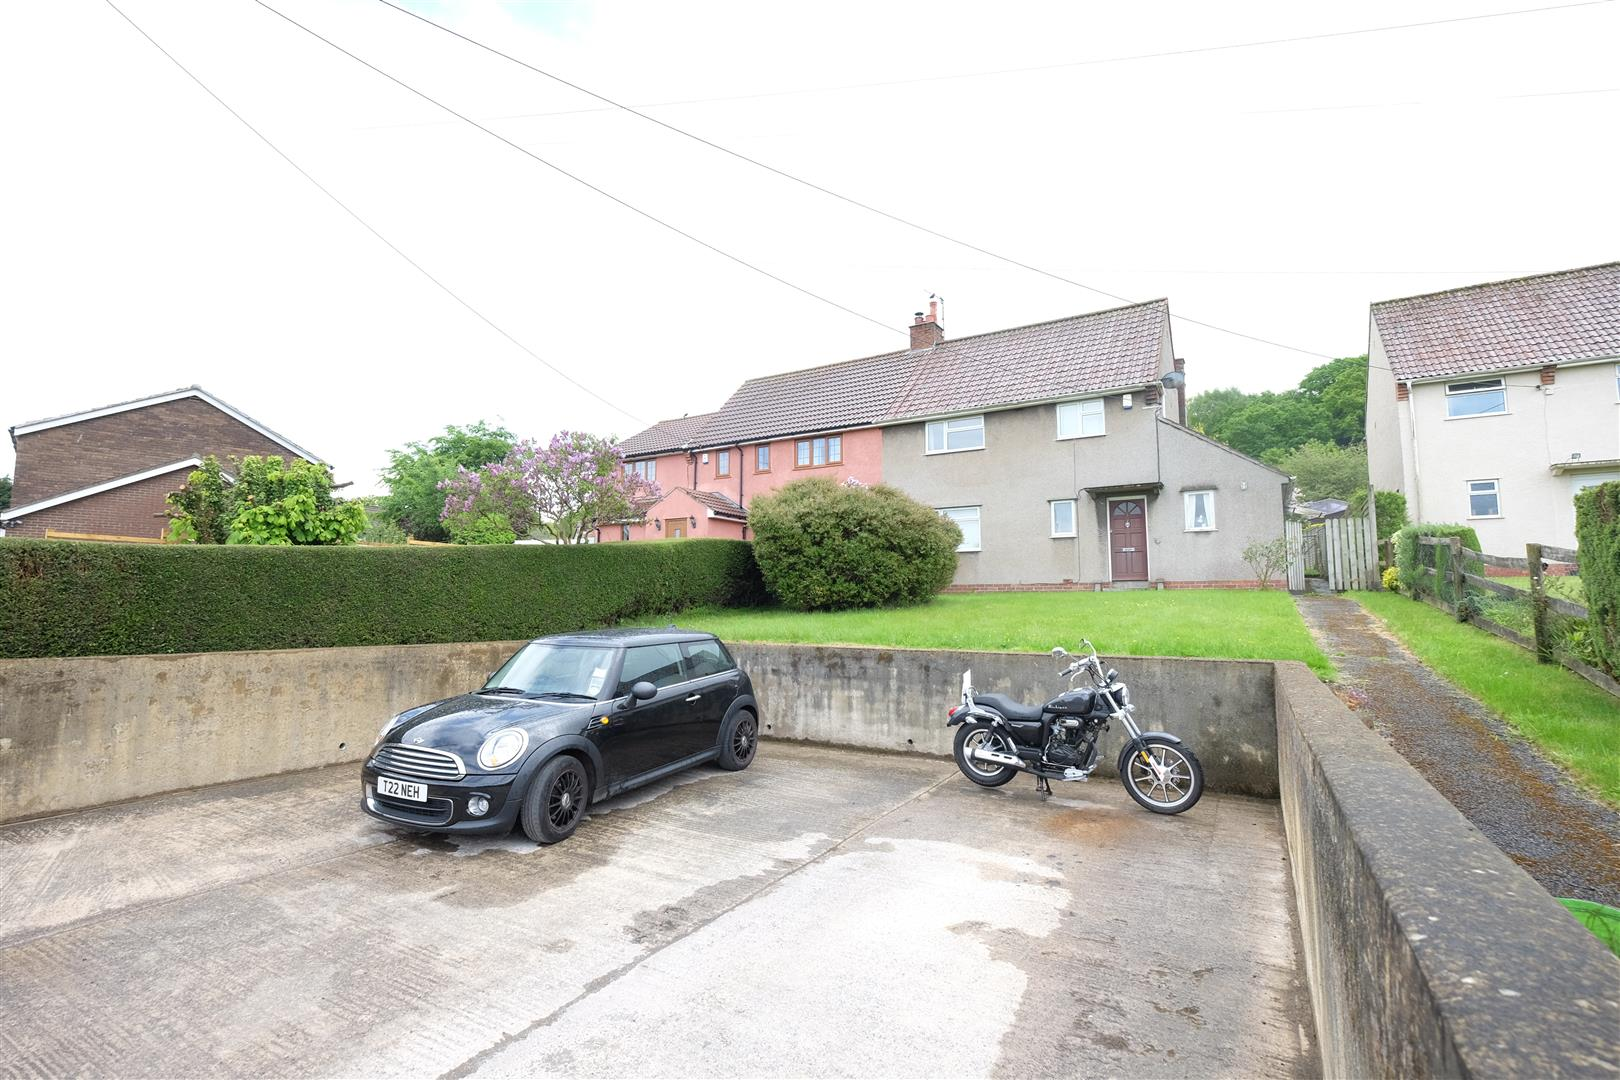 Images for 2 Clevedon Lane, Clapton In Gordano, Bristol EAID:hollismoapi BID:11